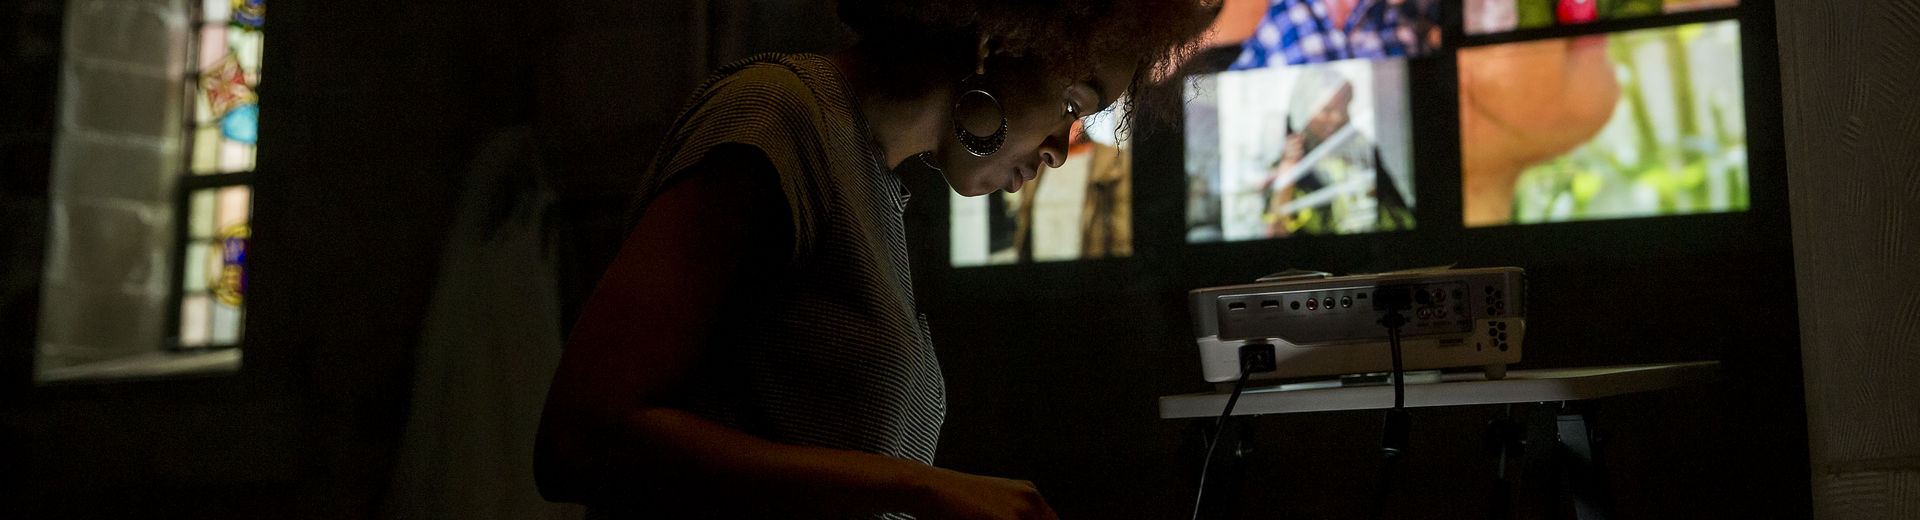 Woman looking at a screen with projected images behind her on a wall.